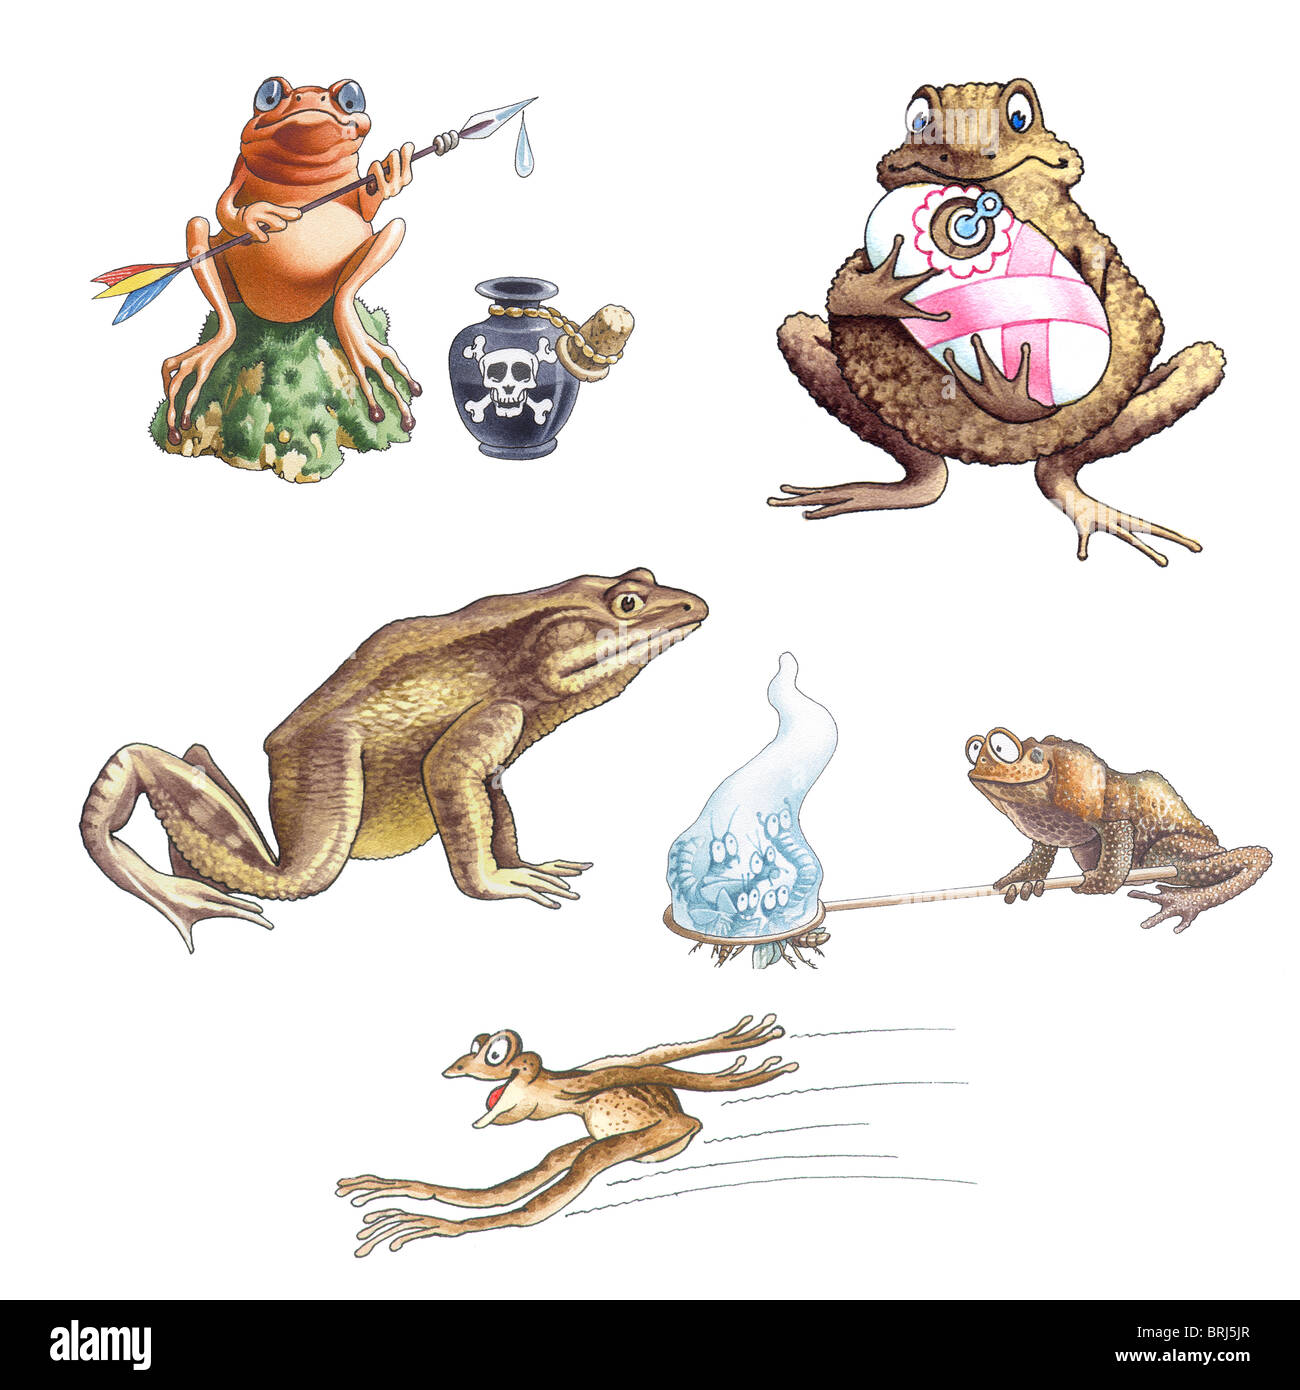 Frogs_2 - Stock Image